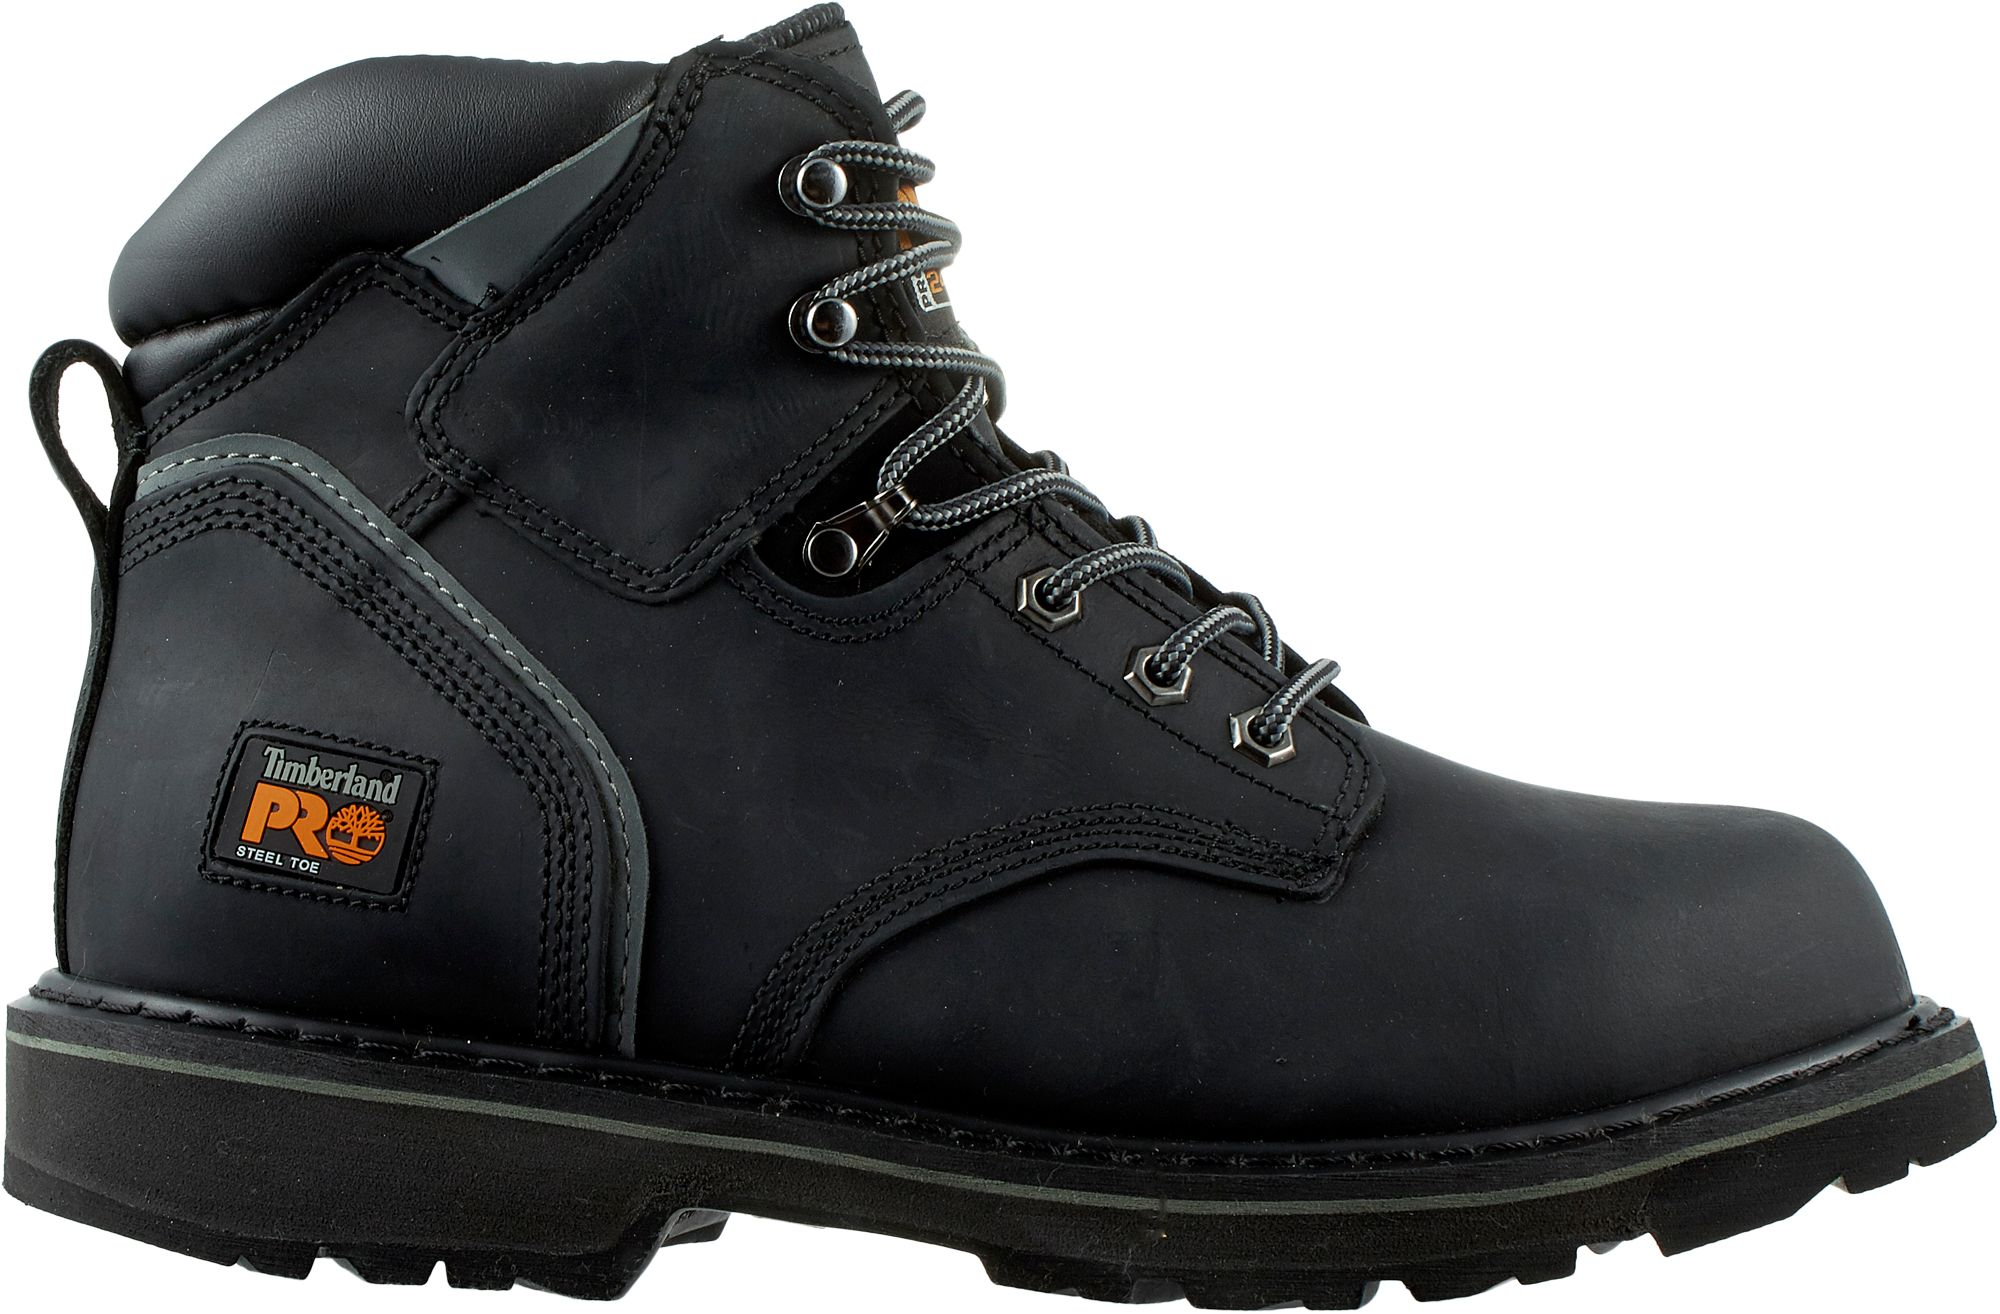 Timberland PRO Men's Jobsite Steel Toe Work Boots| DICK'S Sporting ...